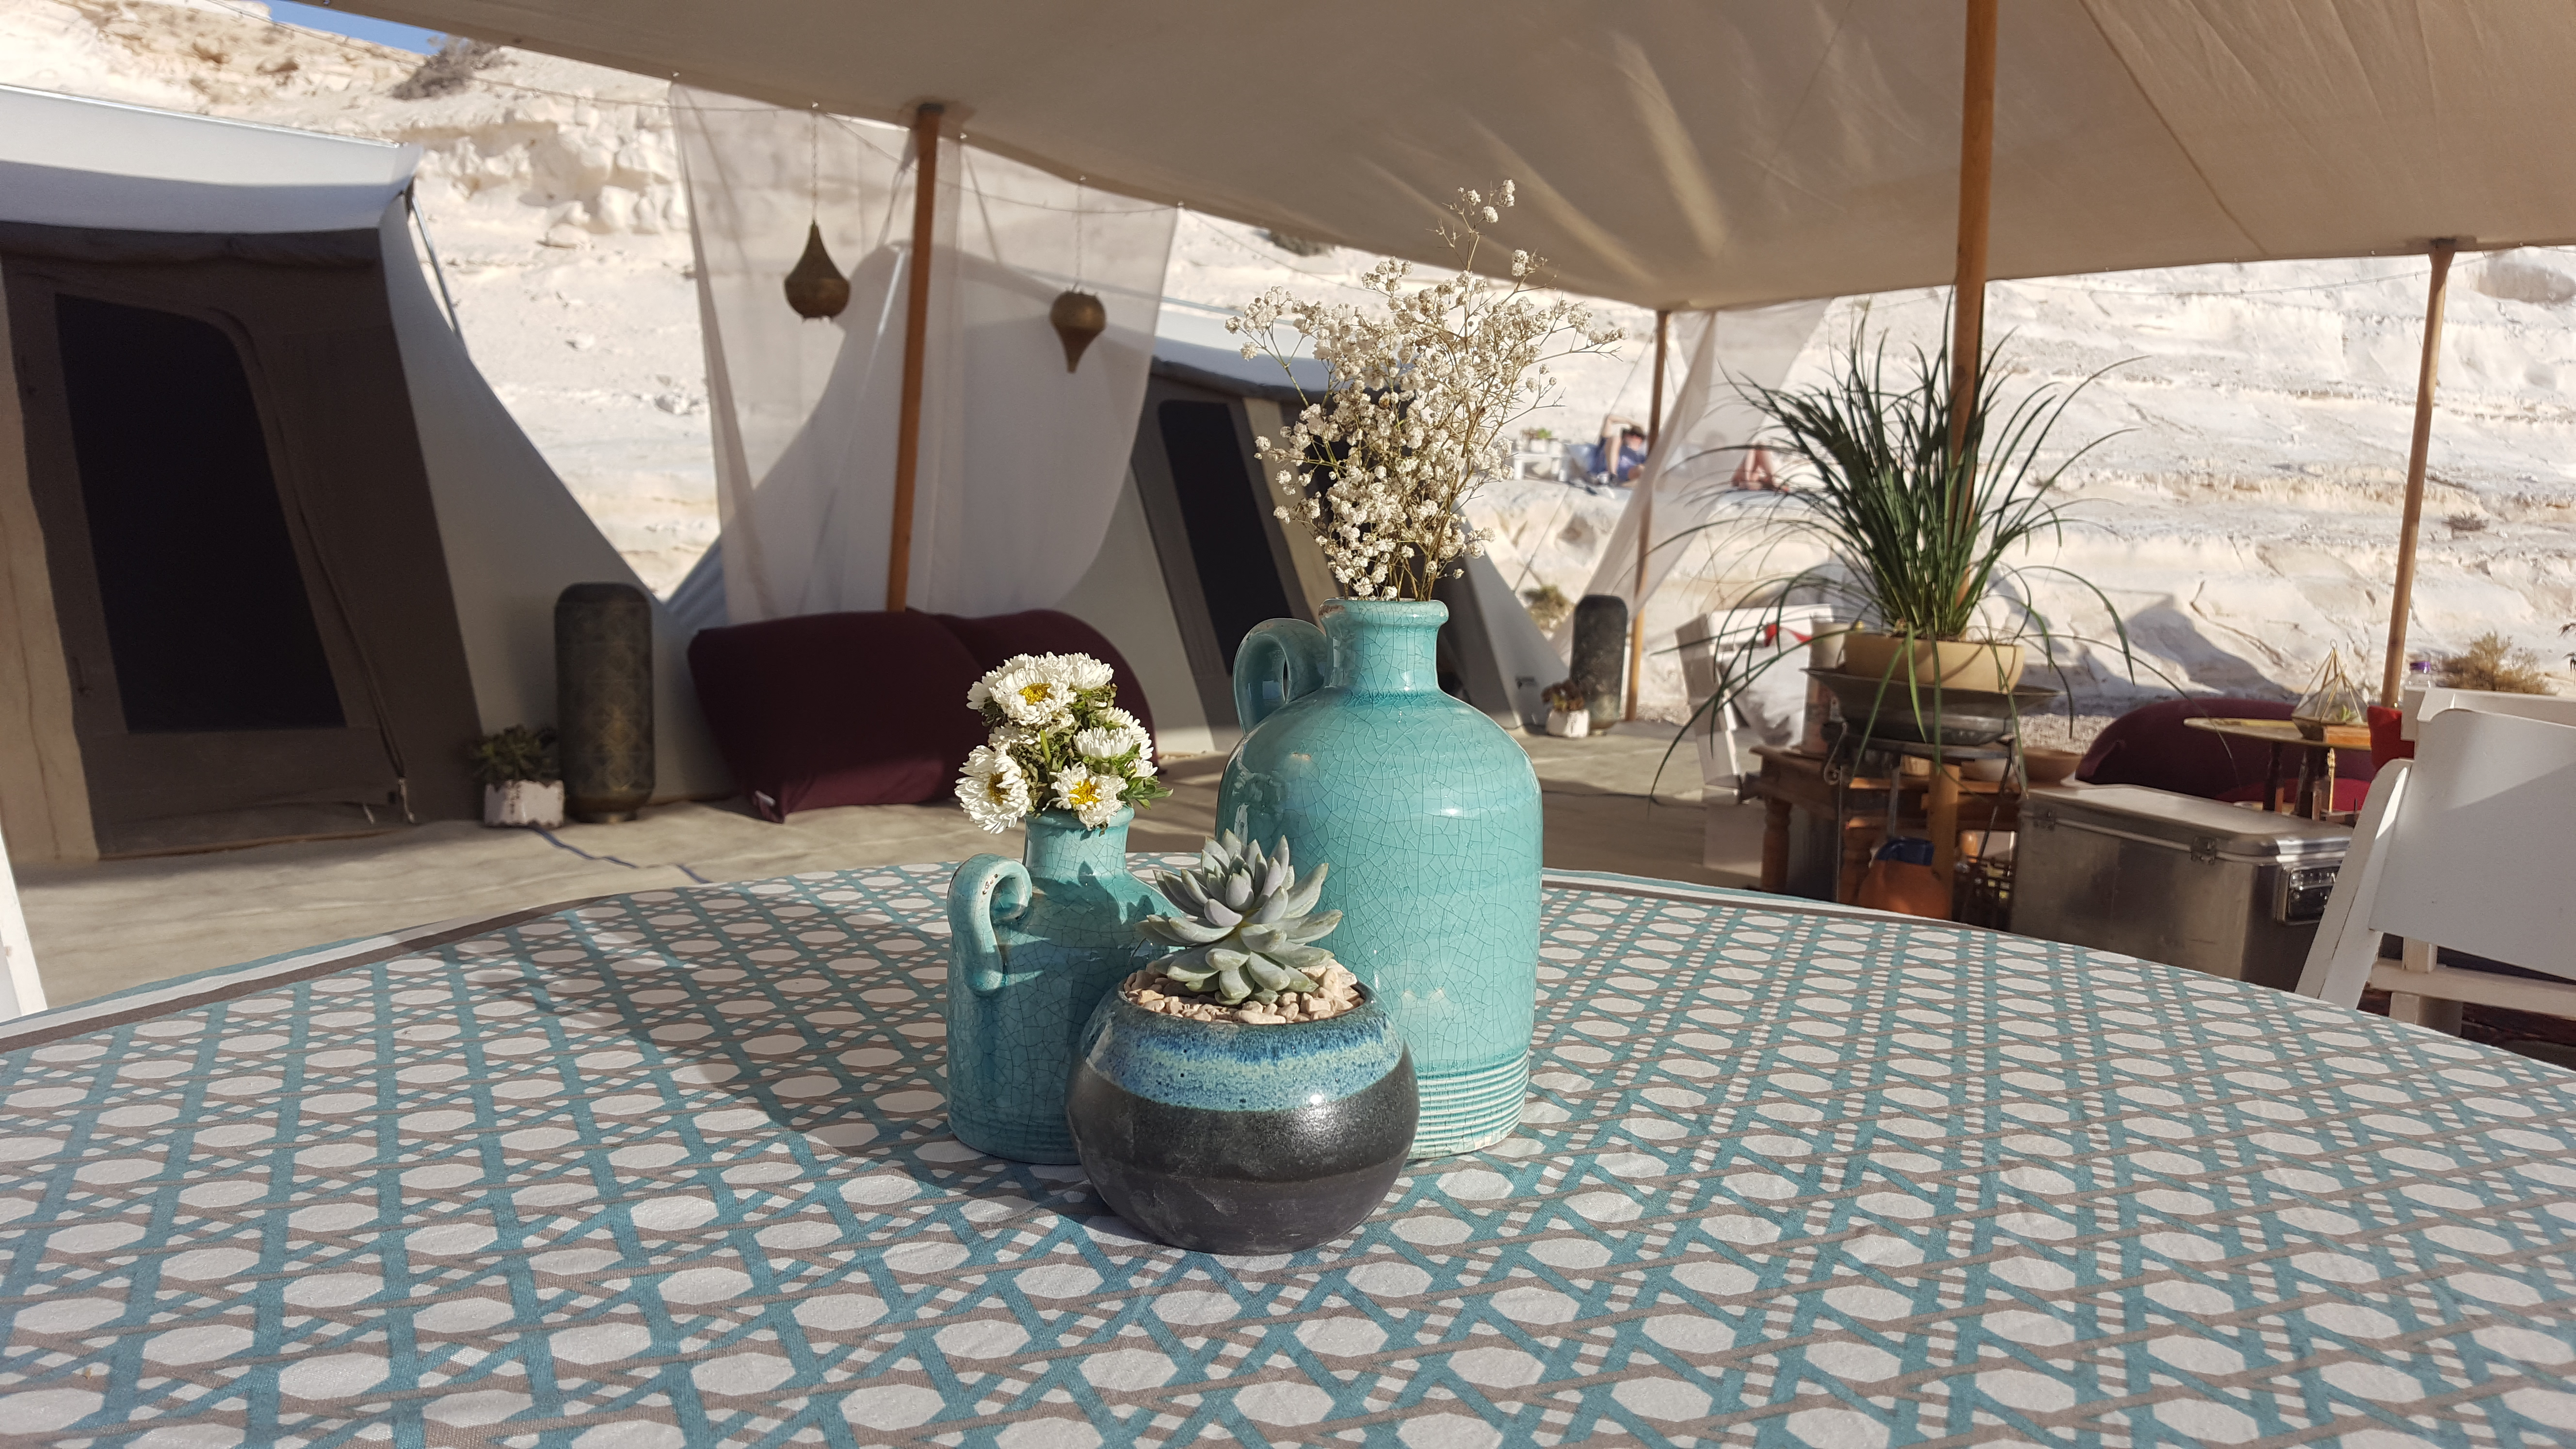 Premium Glamping tents in Israel